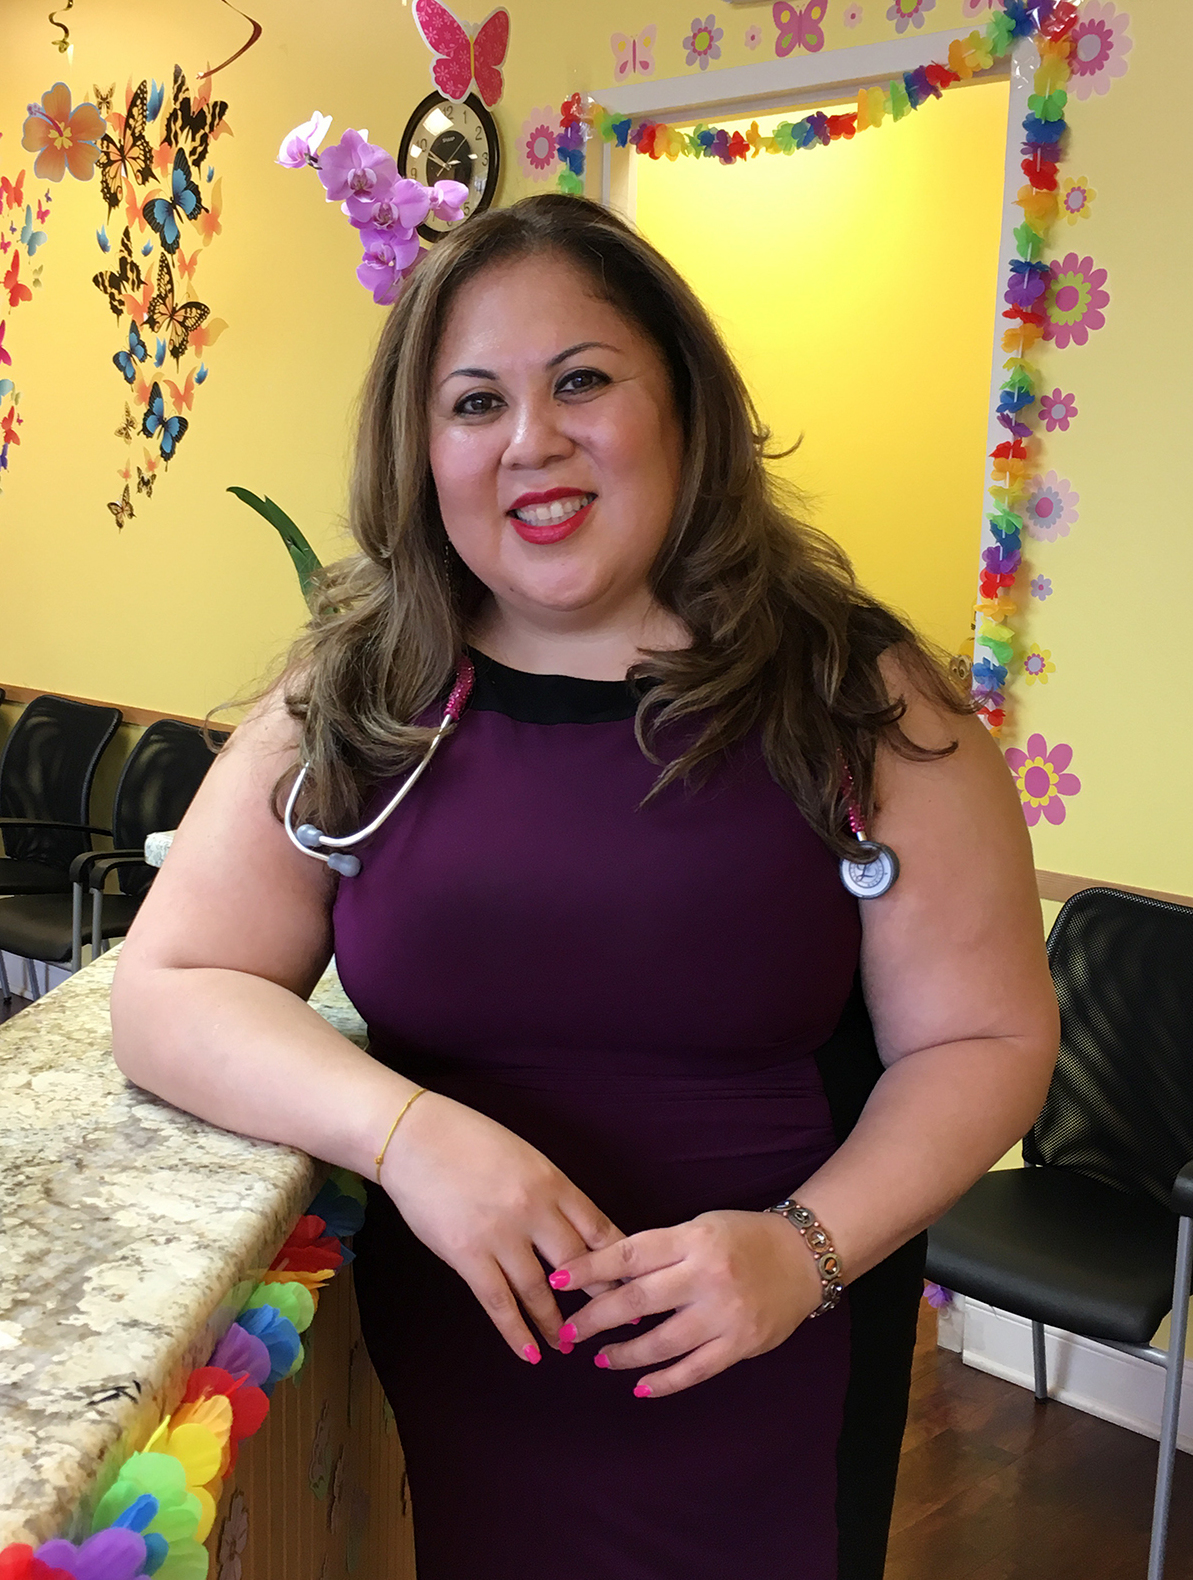 Immunologist Juanita Mora has been arranging antibody testing in Chicago for people who need the test to go back to work. A positive test doesn't guarantee immunity from coronavirus reinfection, she tells her patients. So social distancing and other precautions are still important. (Juanita Mora)